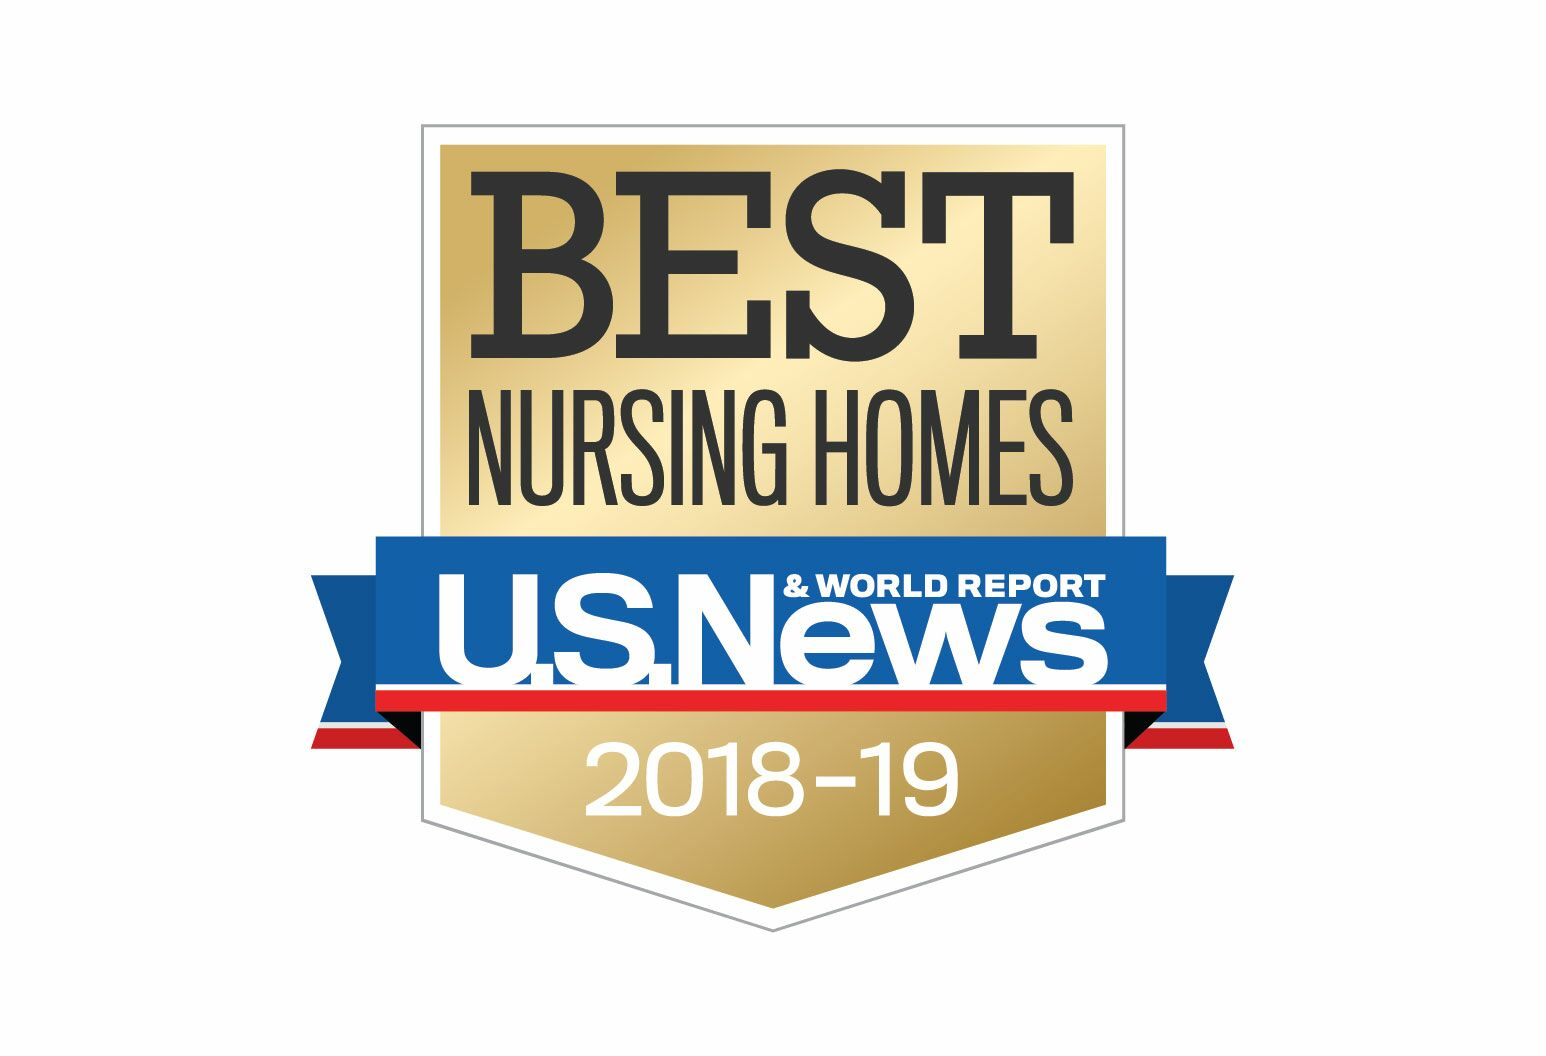 """Best Nursing Home, U.S News & World Reports, 2018-19"""